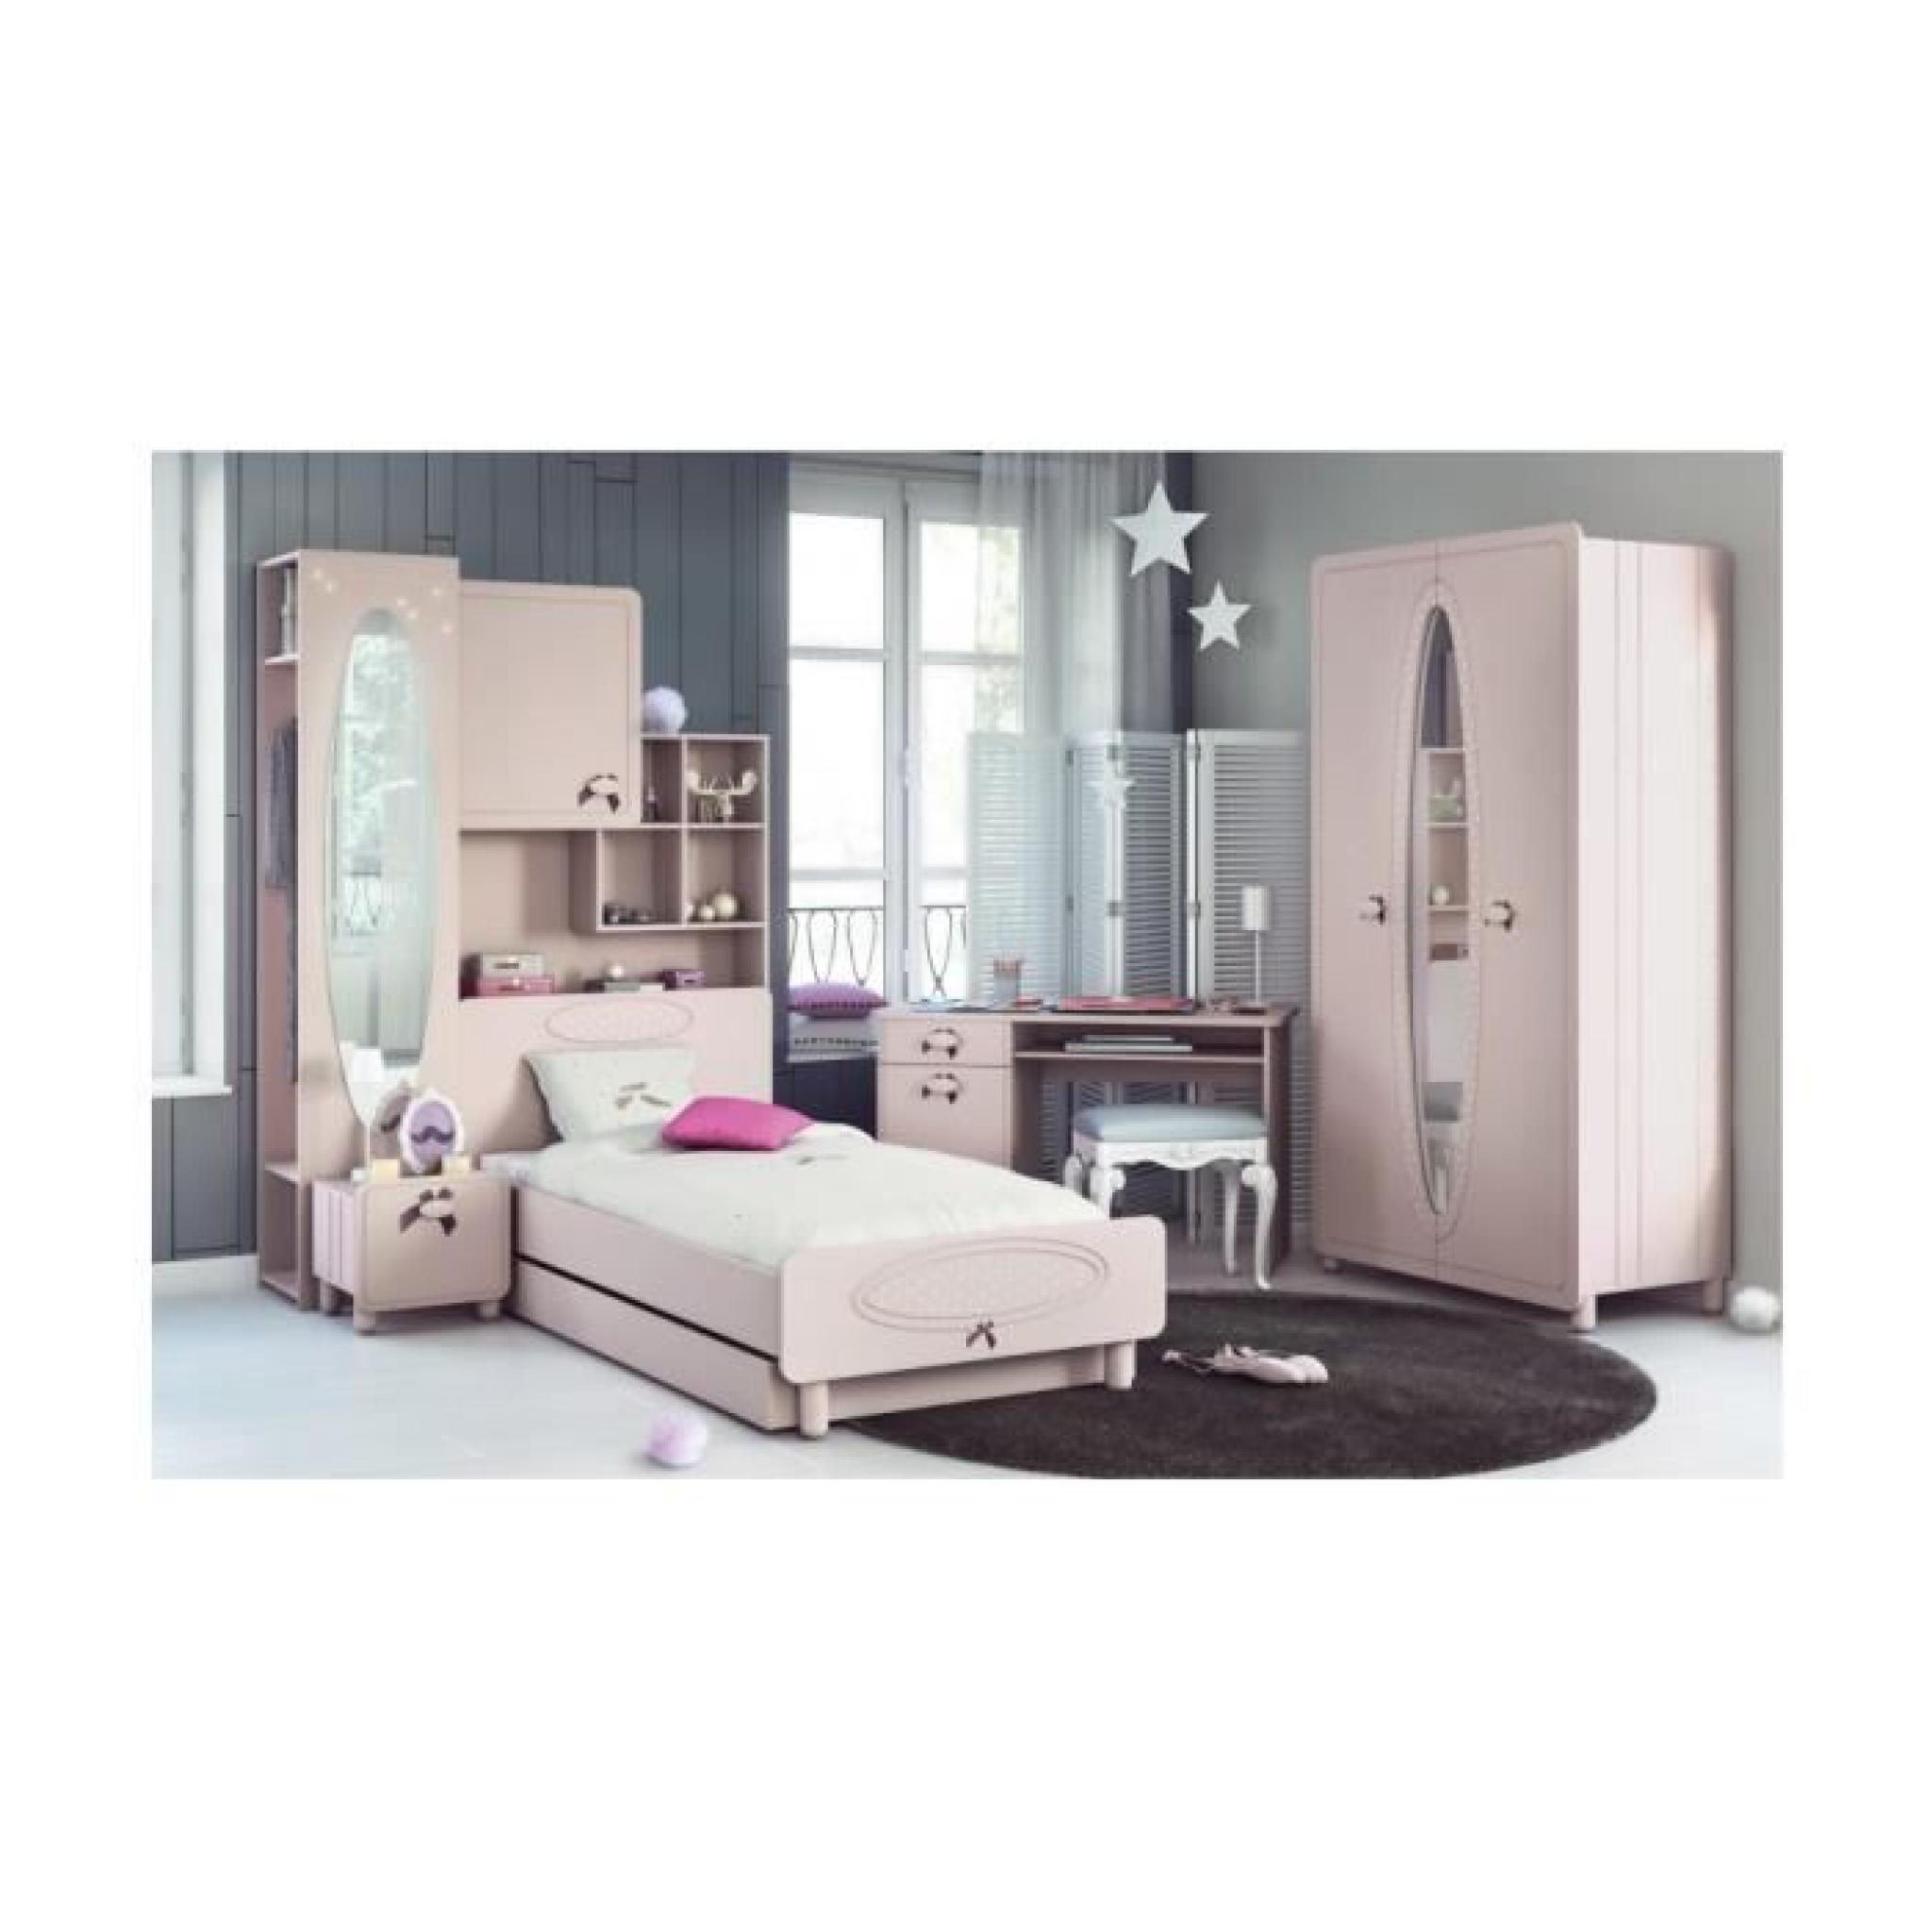 lit pont fille beige et rose id es novatrices de la conception et du mobilier de maison. Black Bedroom Furniture Sets. Home Design Ideas